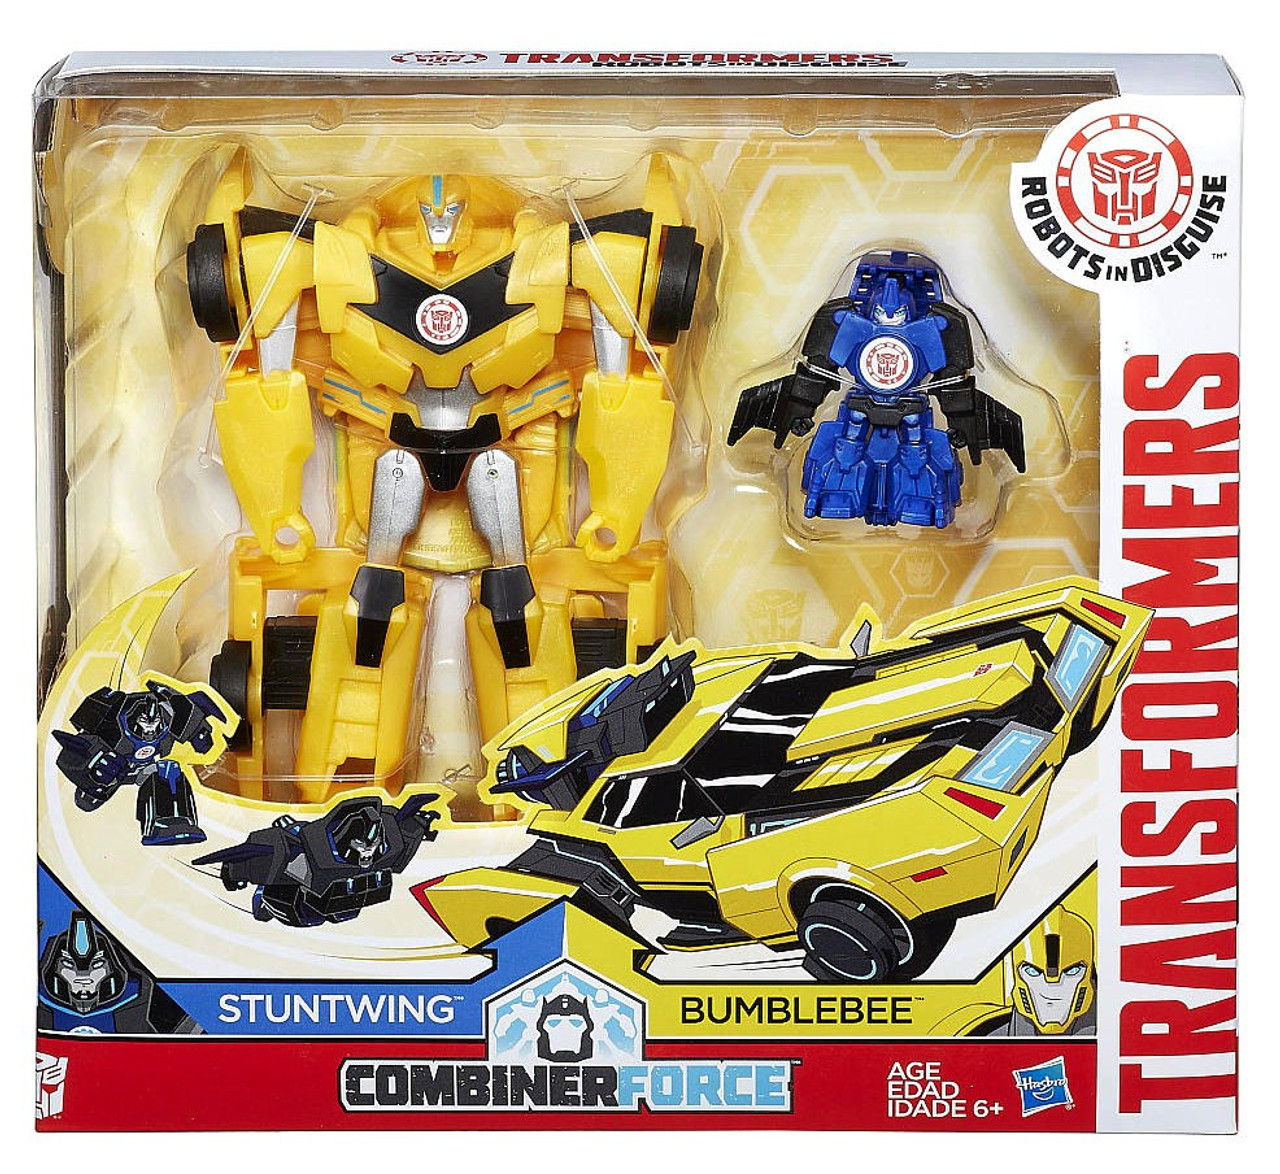 Transformers Combiner Force Sideswipe /& Bumblebee Figures New Damaged Package